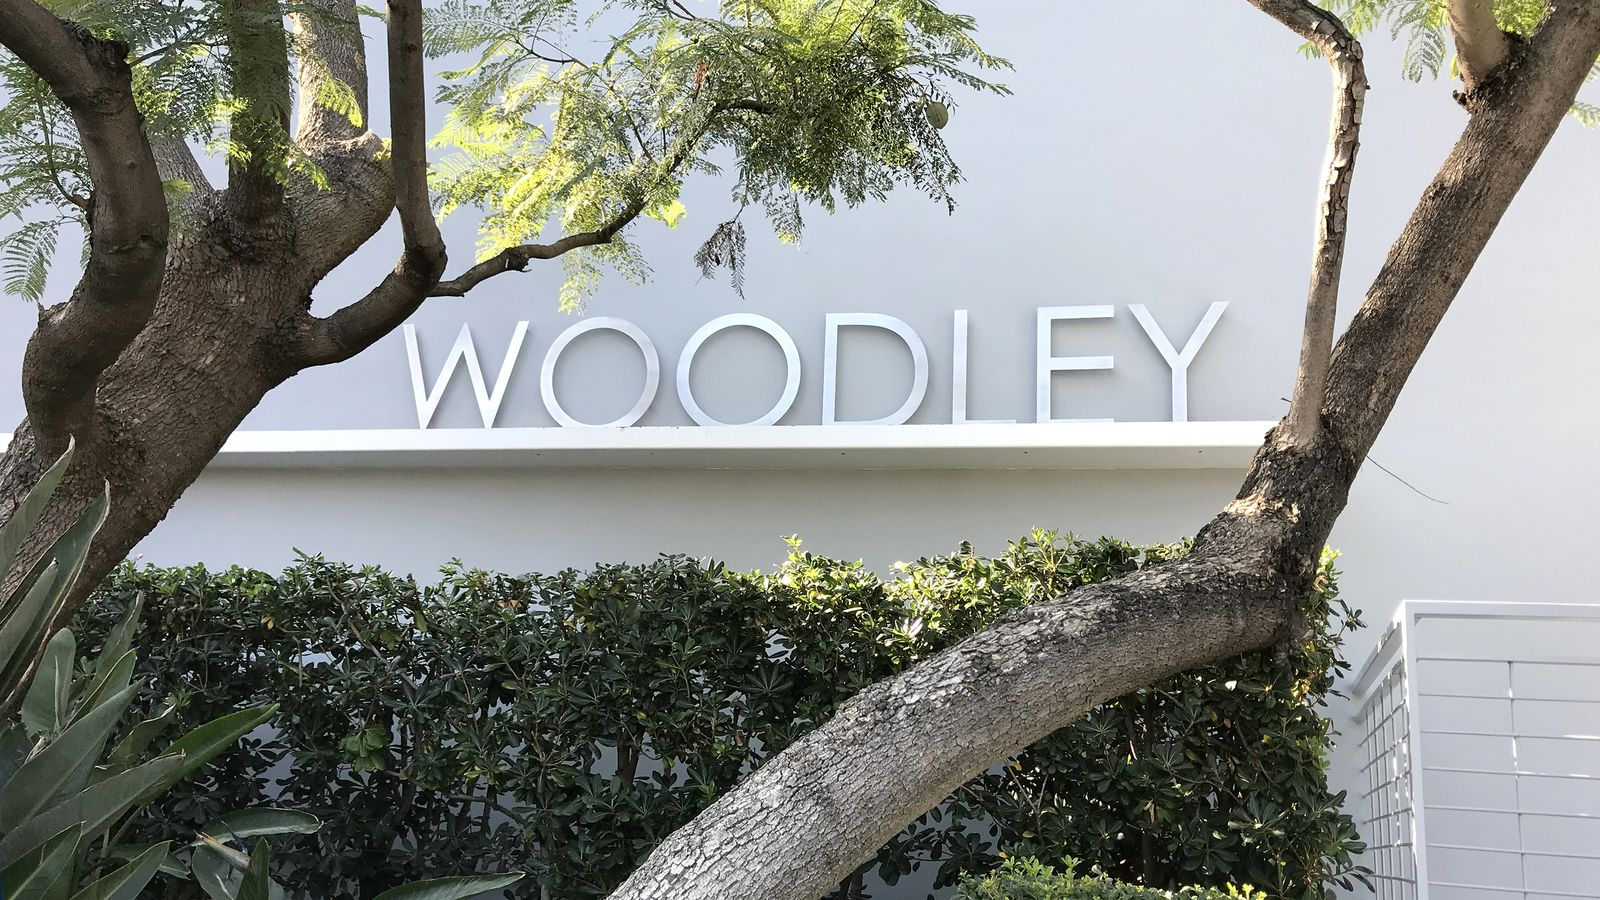 Woodley exterior letters